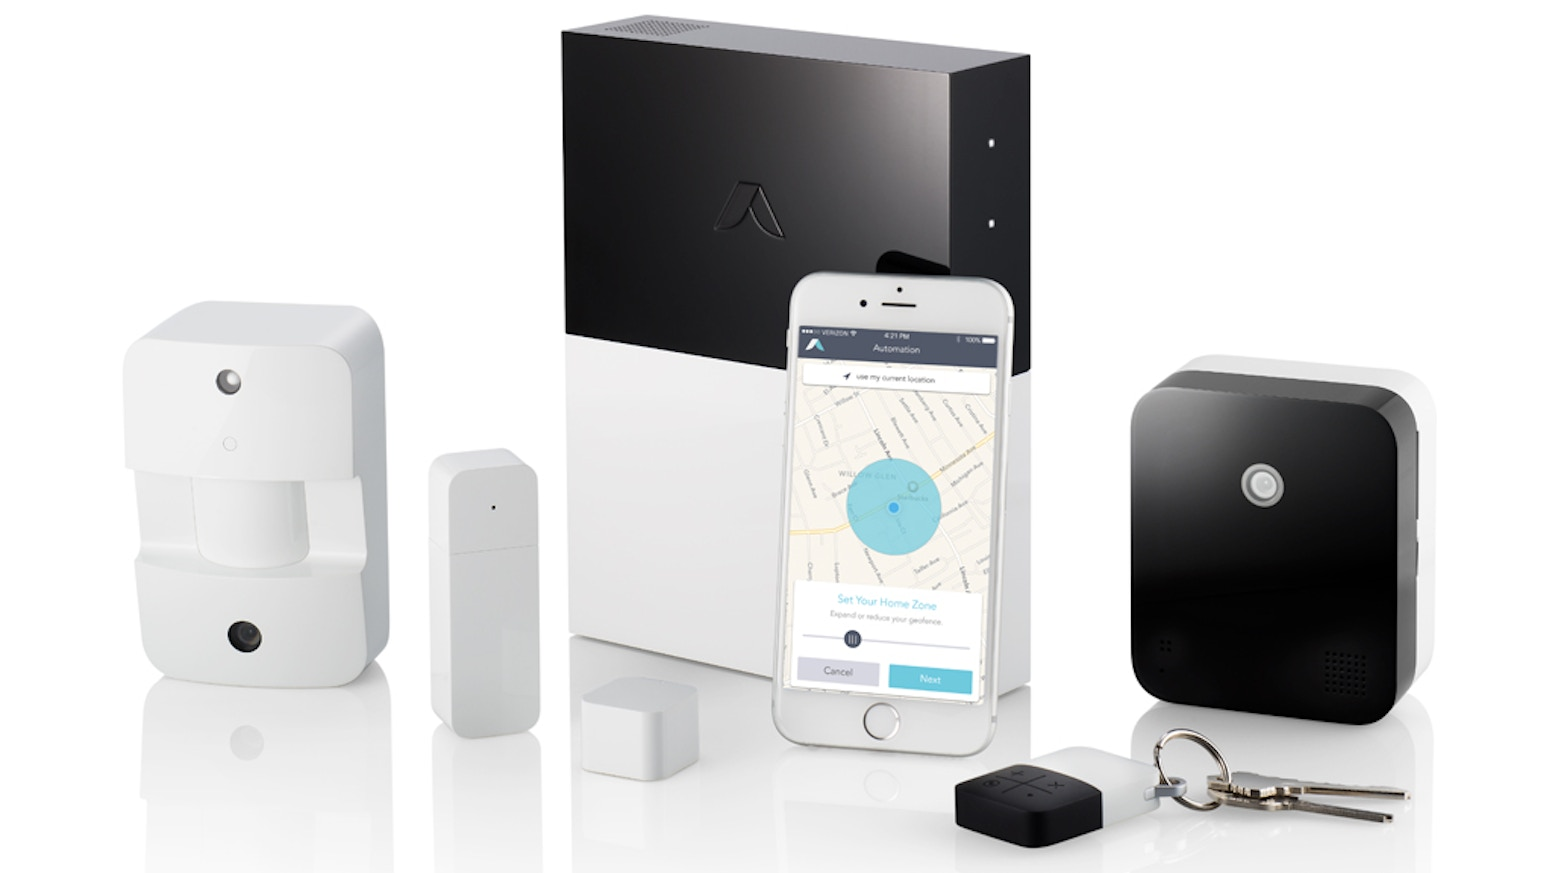 abode is a home security and automation company that offers a self-installed, professional-grade solution with no contracts.